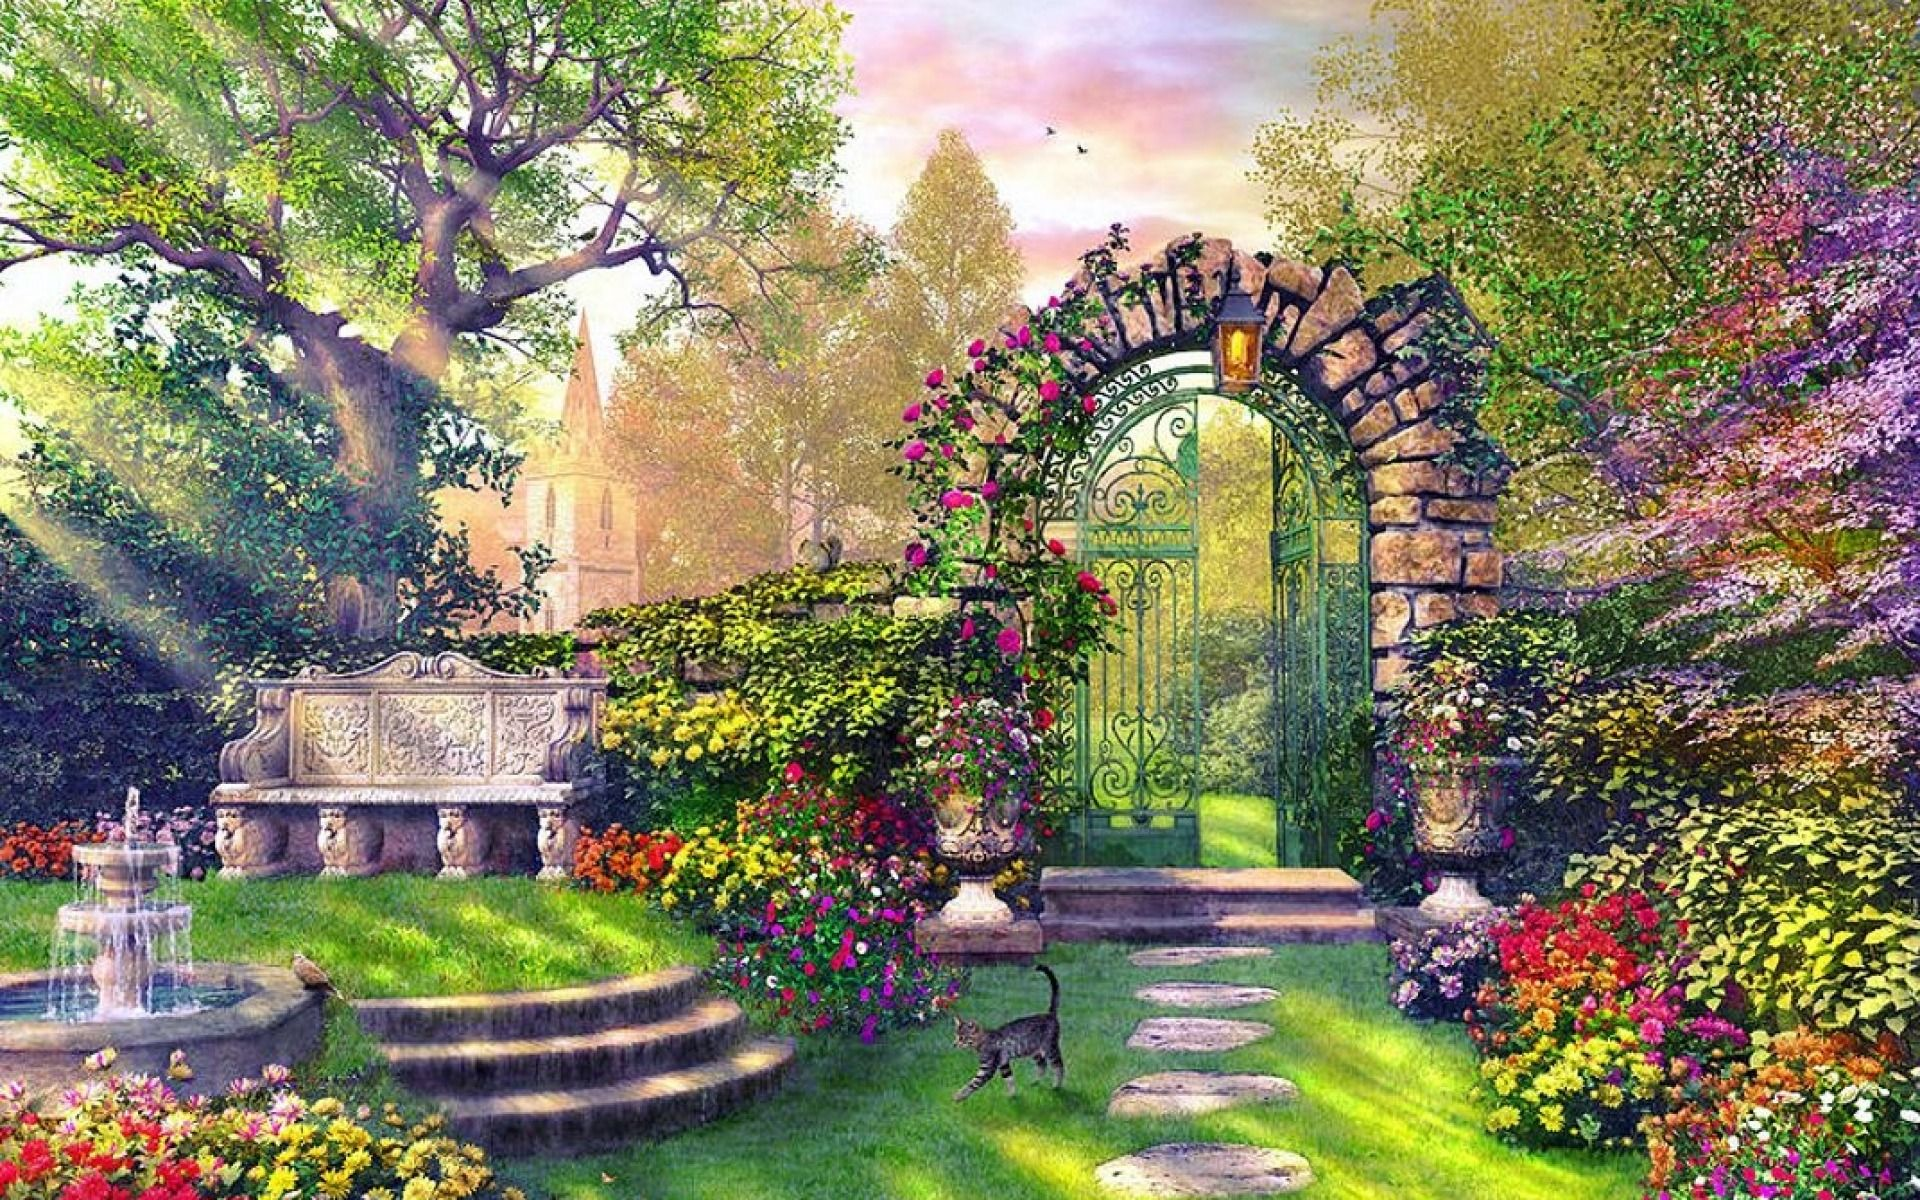 Enchanting Garden wallpapers   Anime scenery, Fantasy art landscapes, Anime  backgrounds wallpapers